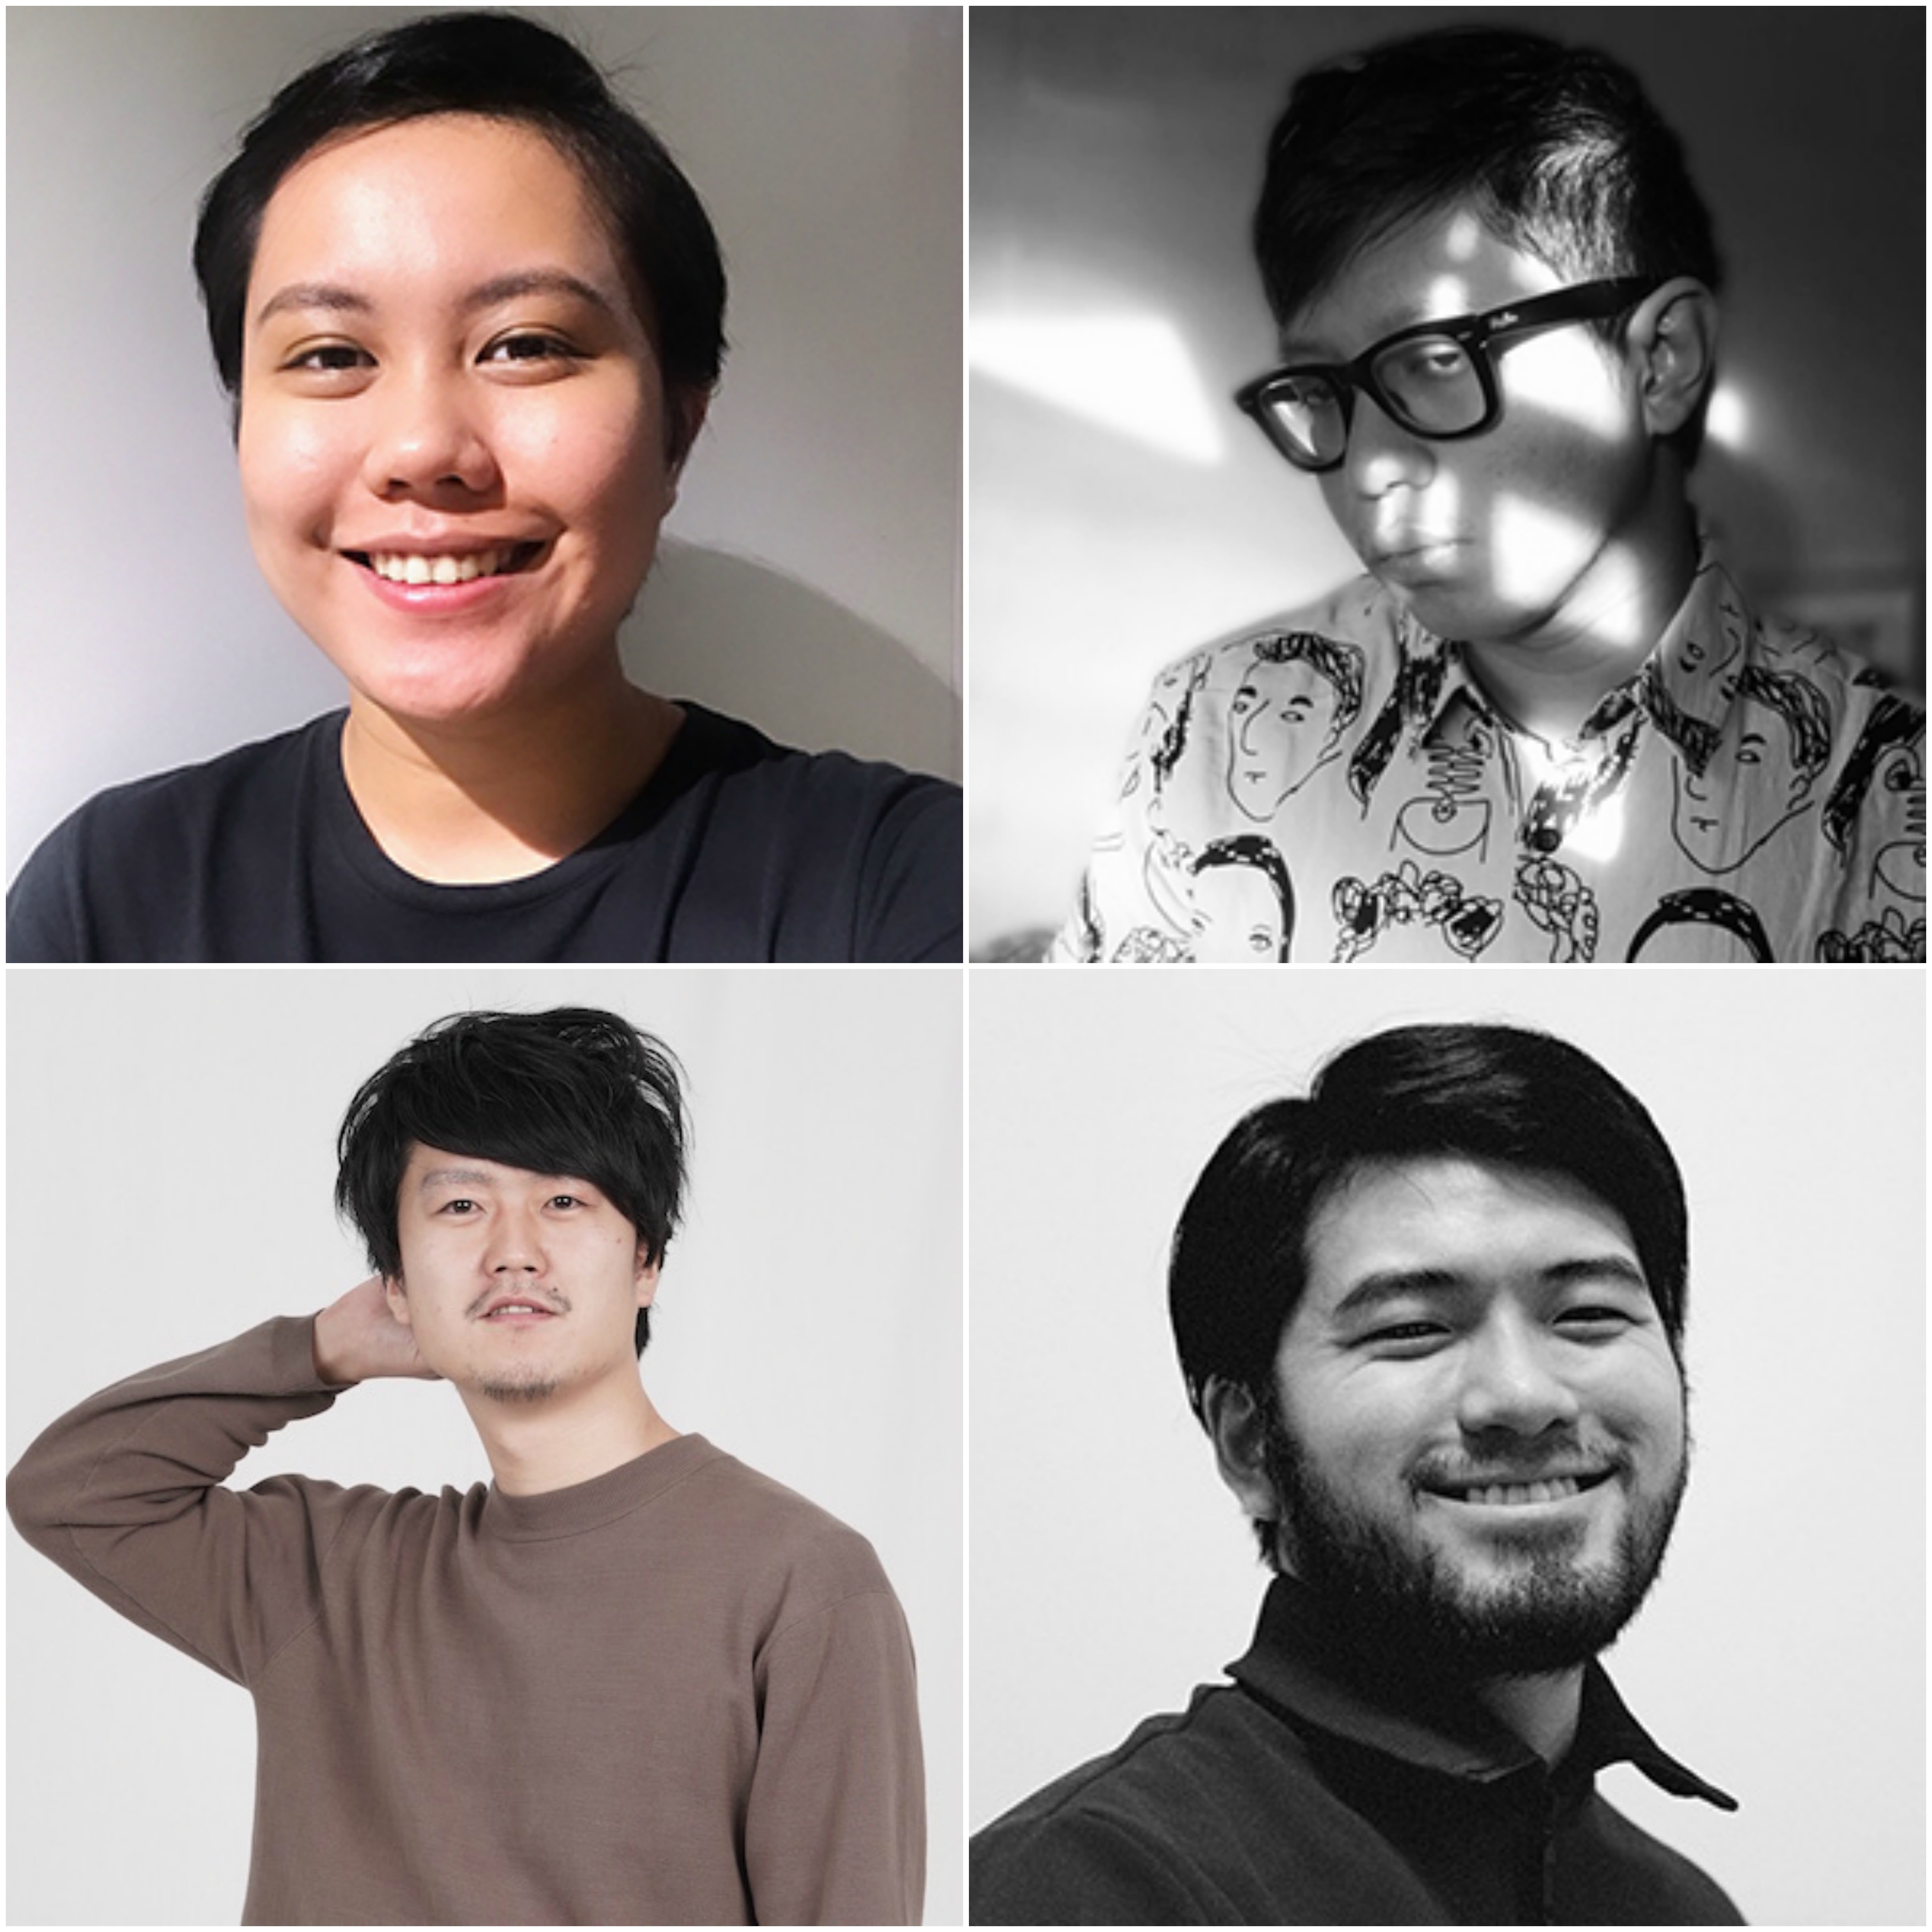 Meet the 16 Young Creatives that will represent Asia at LIA Creative LIAisons 2019